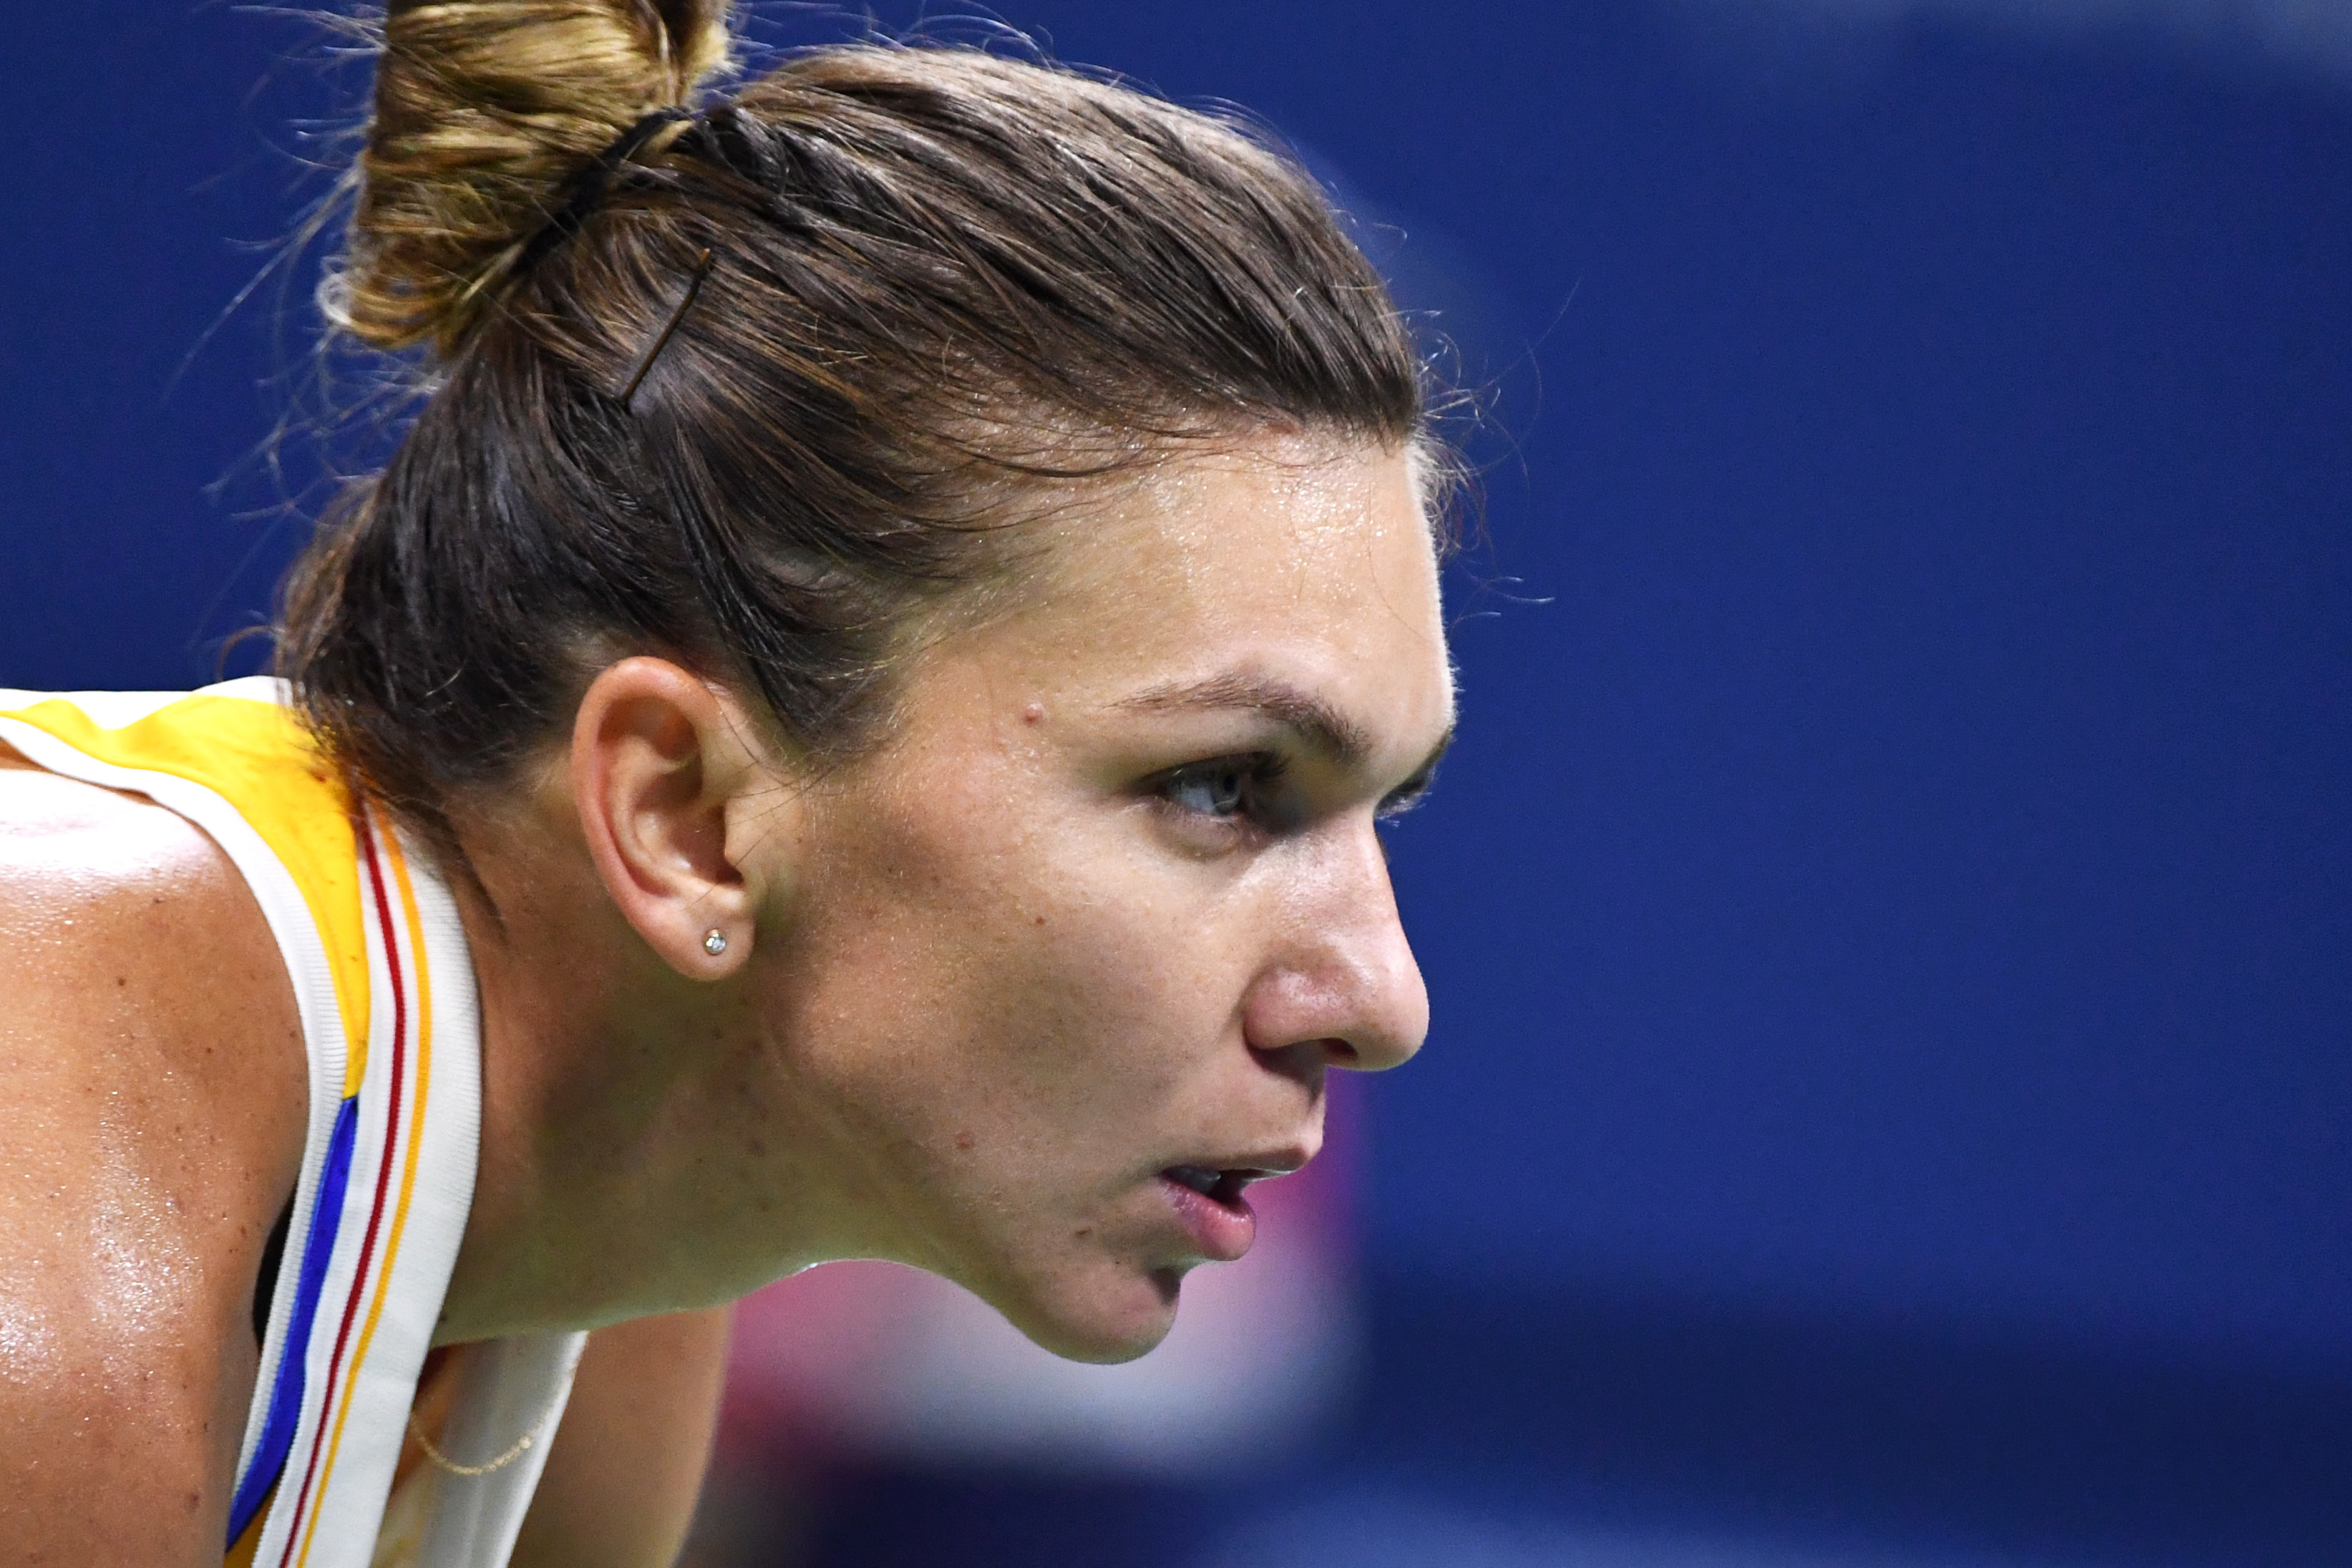 Top-seeded Simona Halep advanced to the semifinals in Paris on Wednesday, coming back to defeat the number 12 seed, Angelique Kerber, 6-7(2), 6-3, 6-2 in two hours and 14 minutes